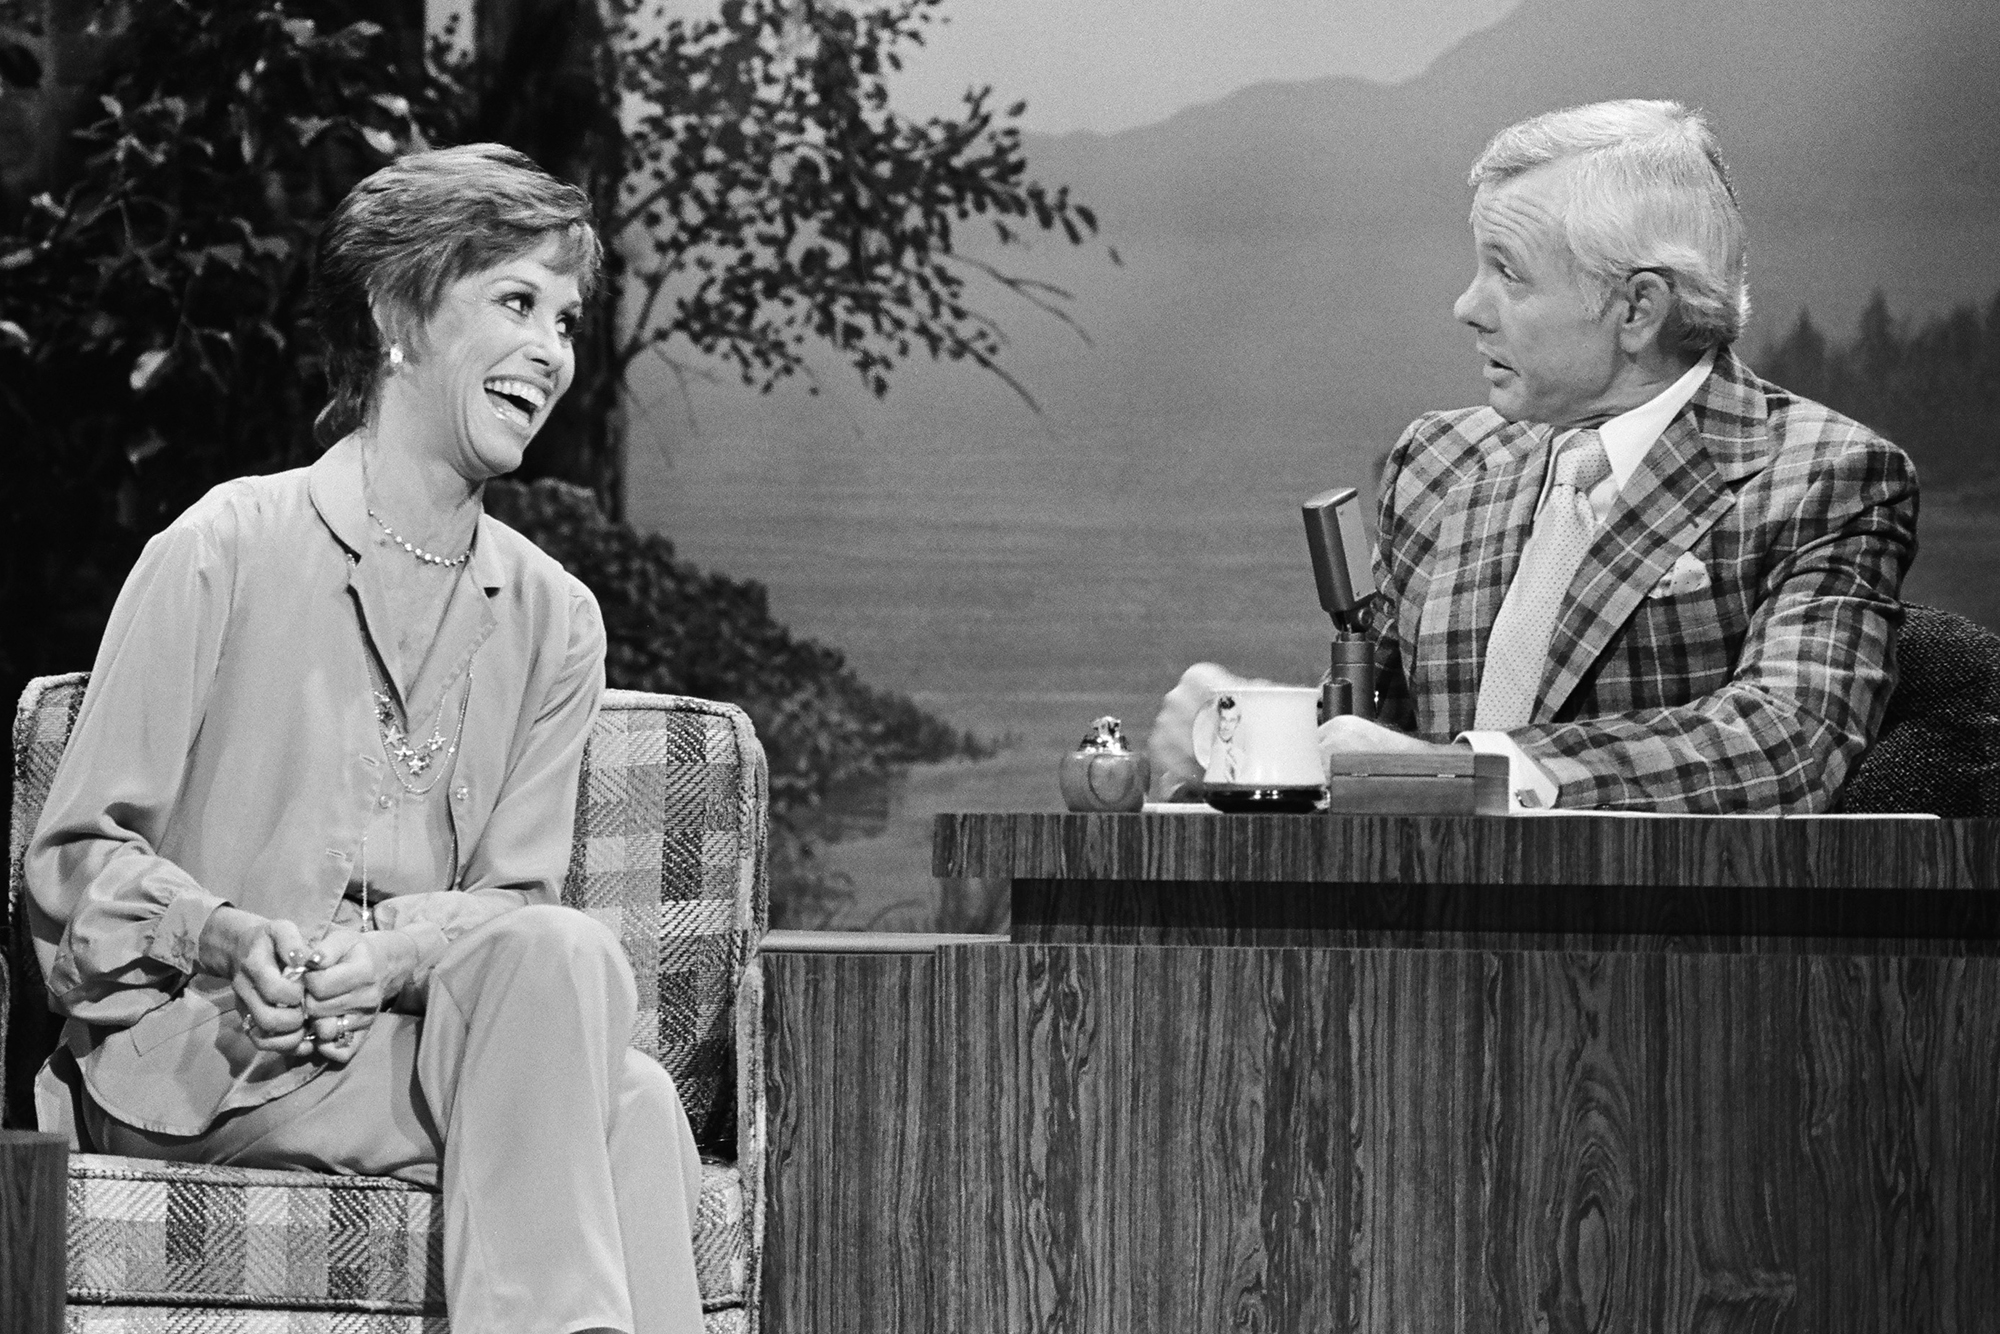 Mary Tyler Moore on The Tonight Show Starring Johnny Carson, on Nov. 3, 1978.